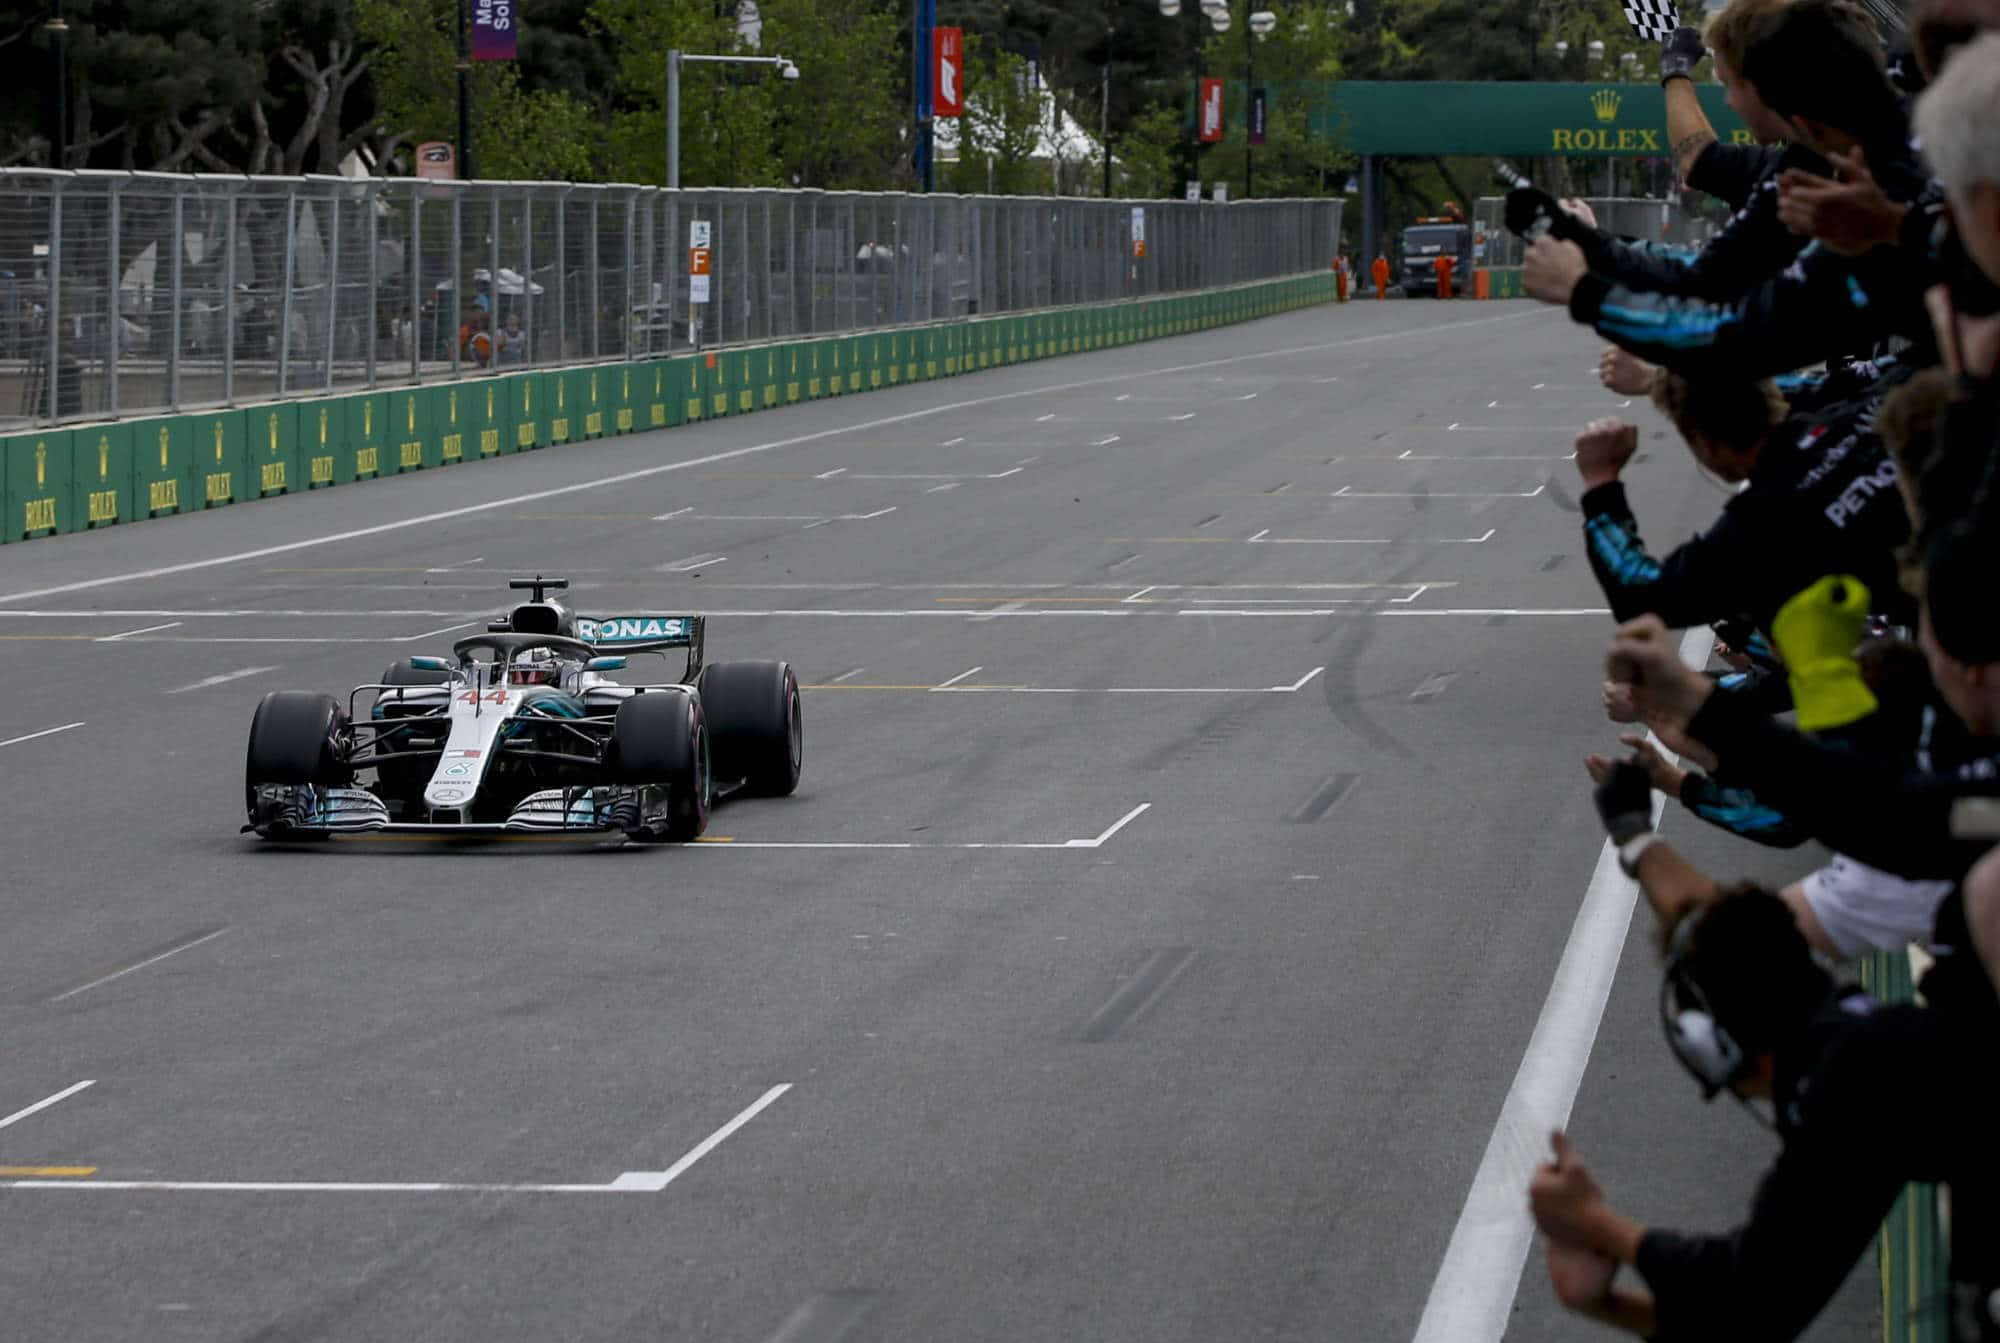 2018 Azerbaijan GP Hamilton wins for Mercedes finish line Photo Daimler